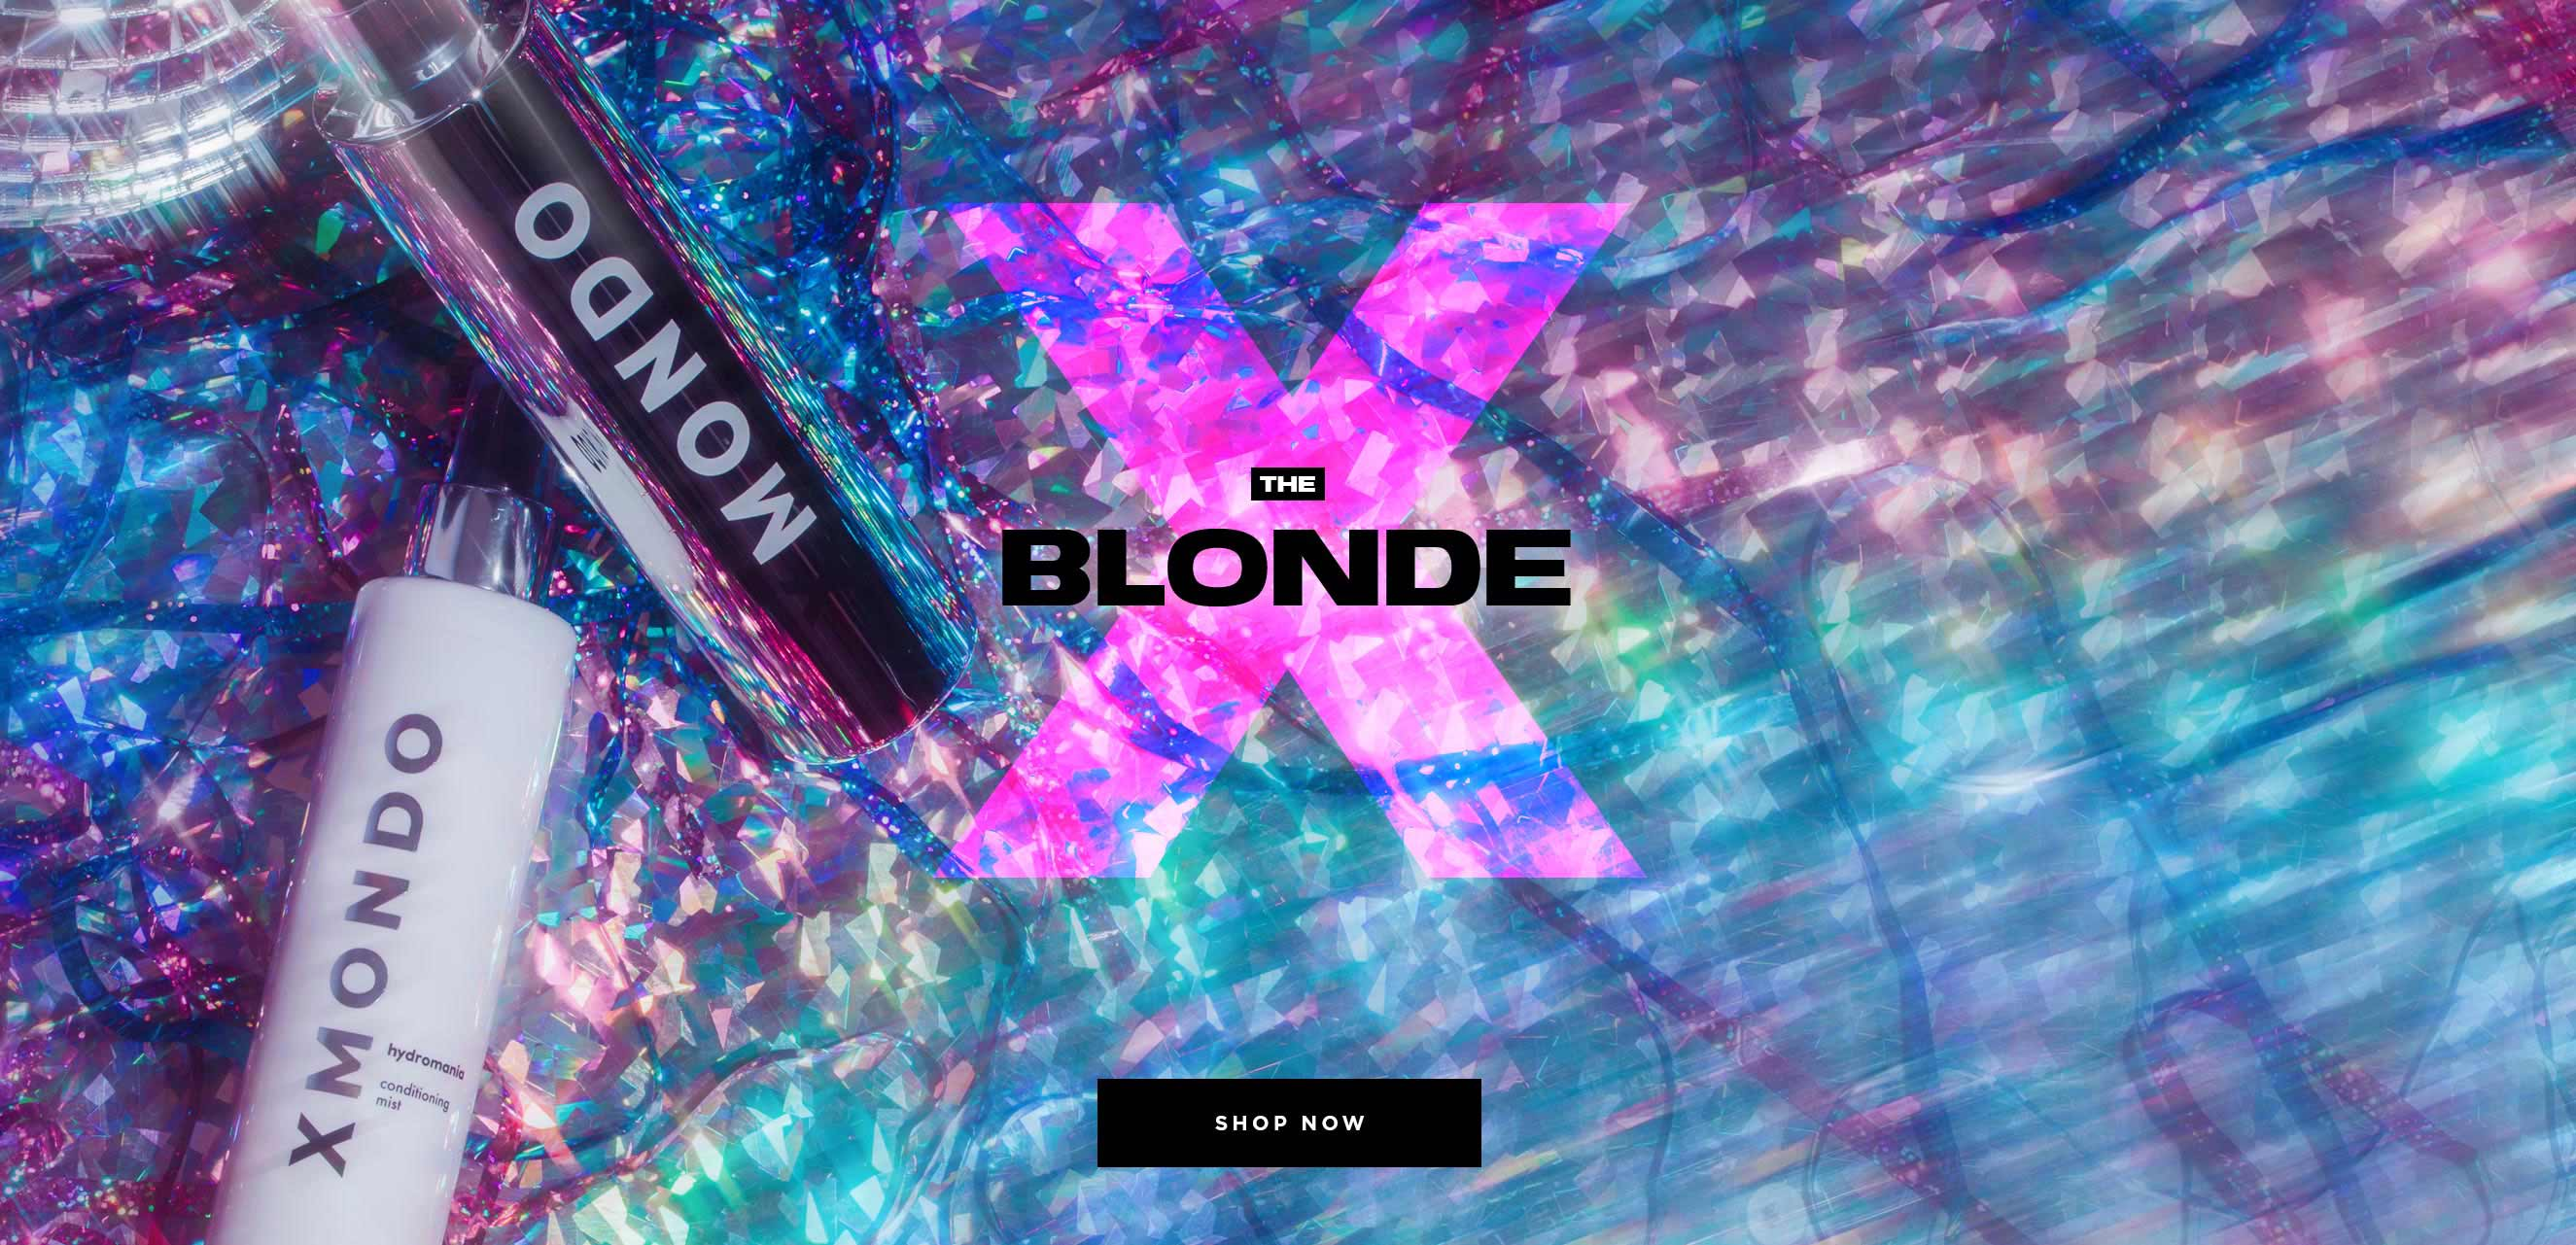 Gift Guide for The Blonde